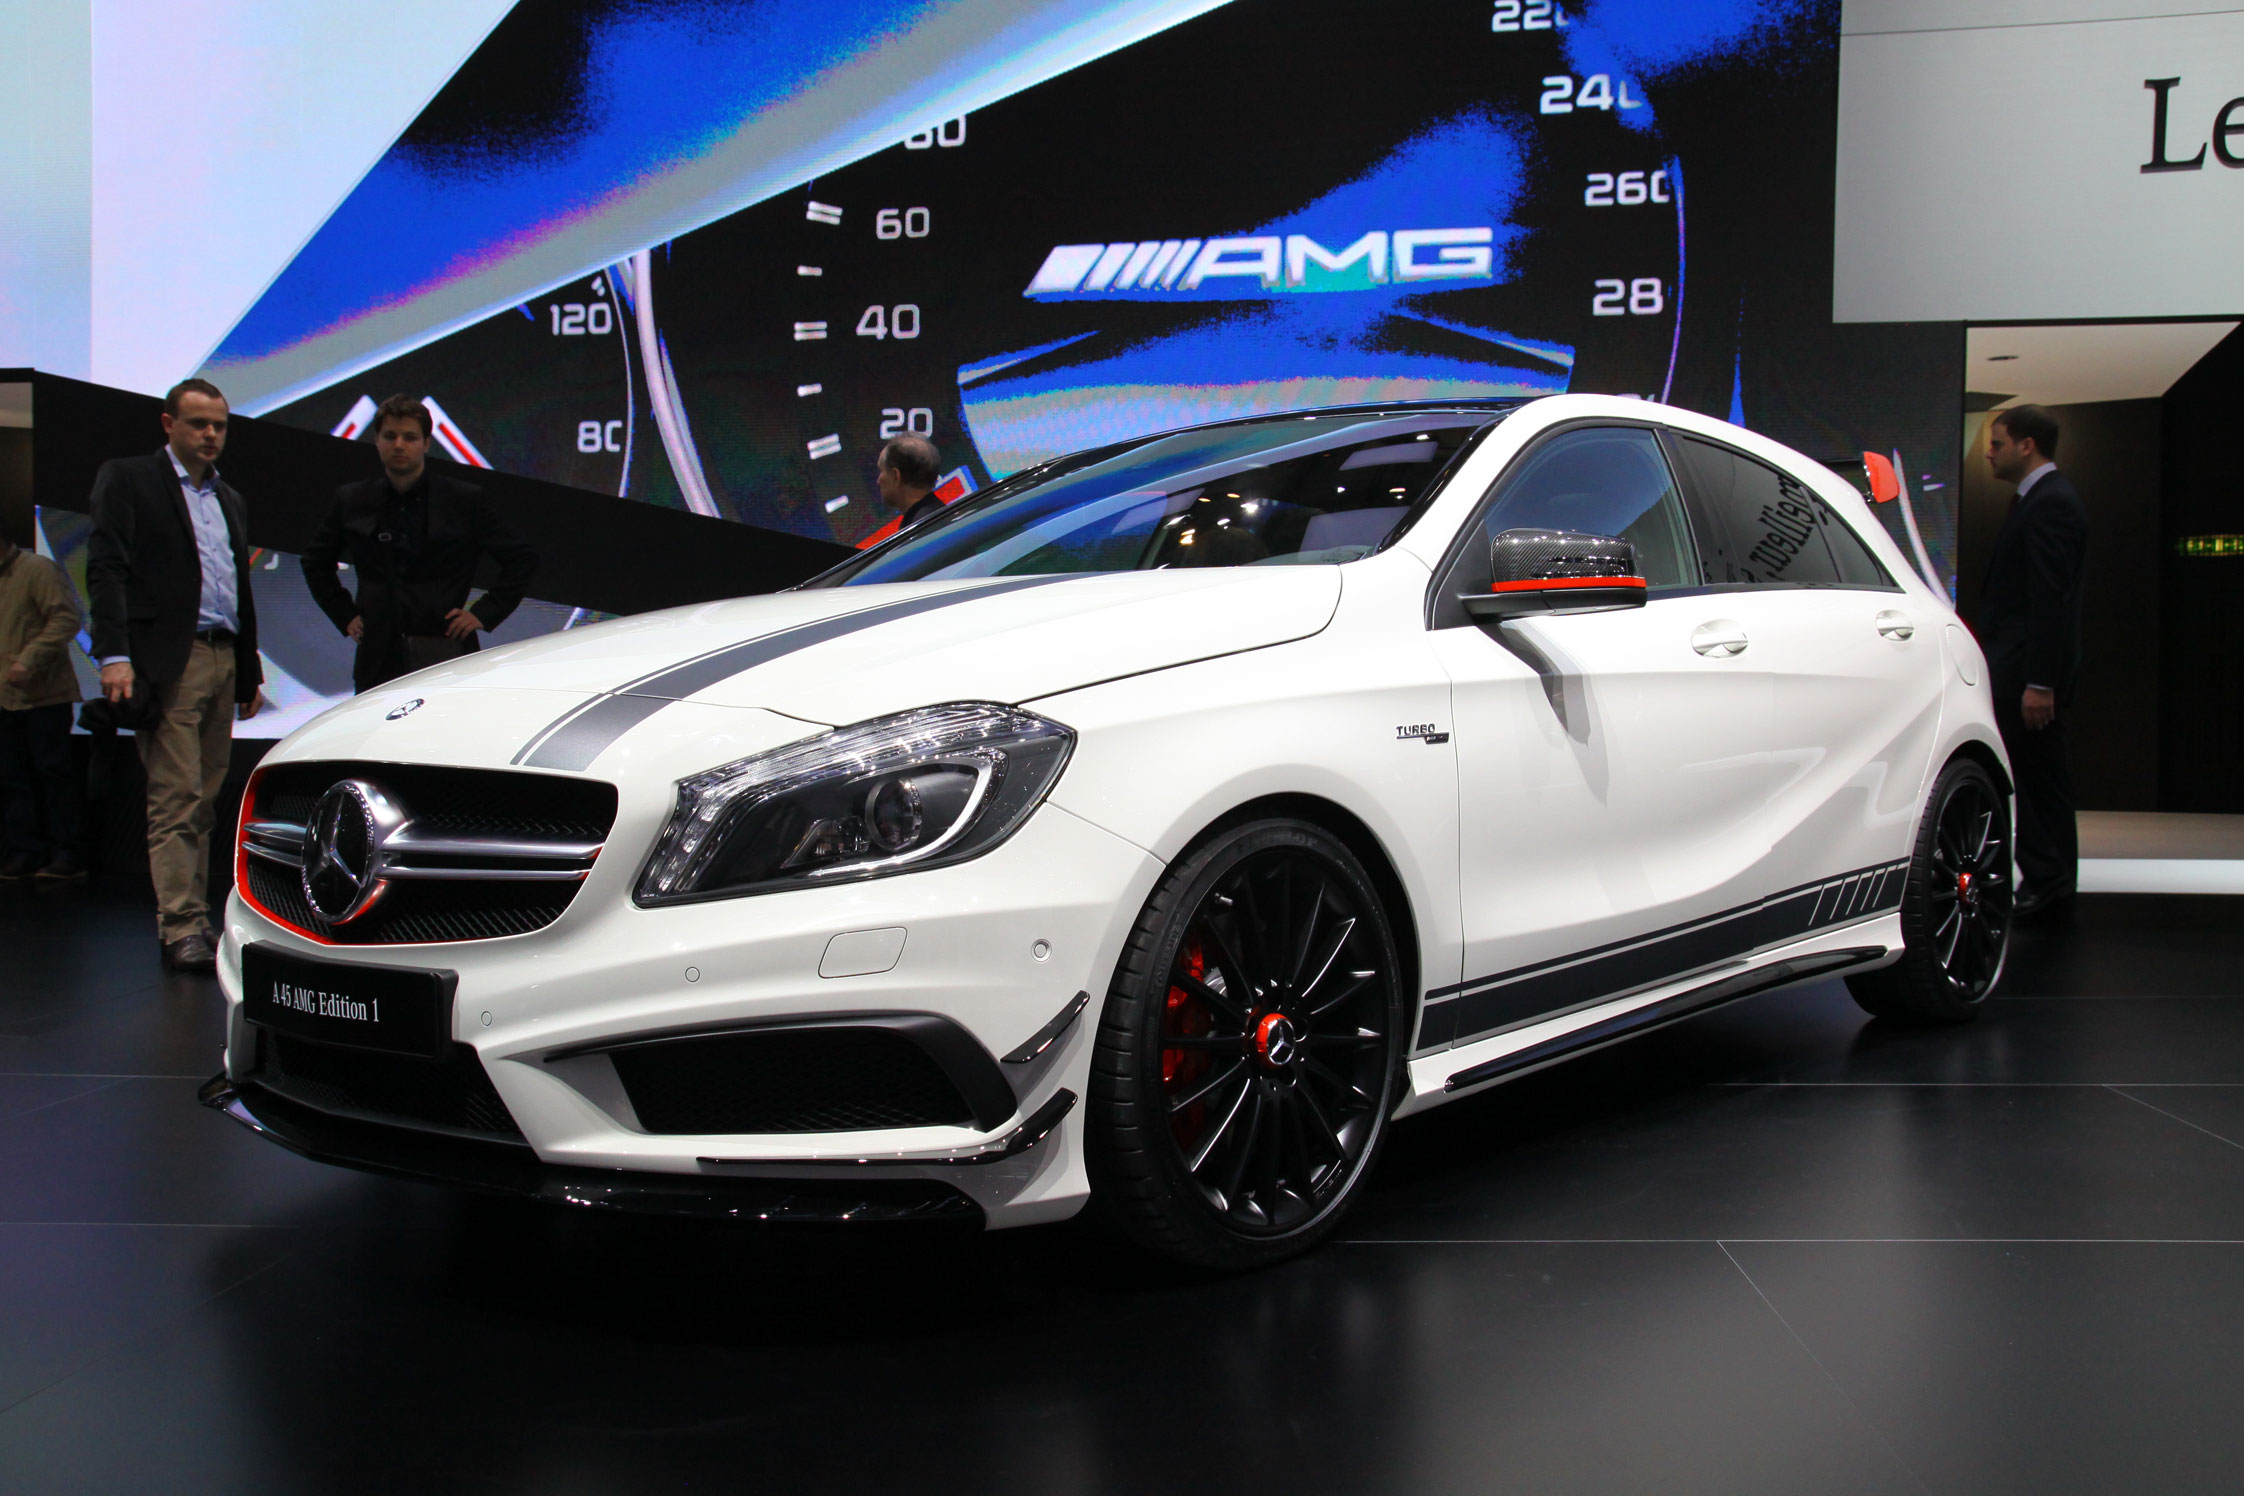 photo mercedes classe a w176 45 amg 360 ch salon de gen ve 2013 m diatheque. Black Bedroom Furniture Sets. Home Design Ideas